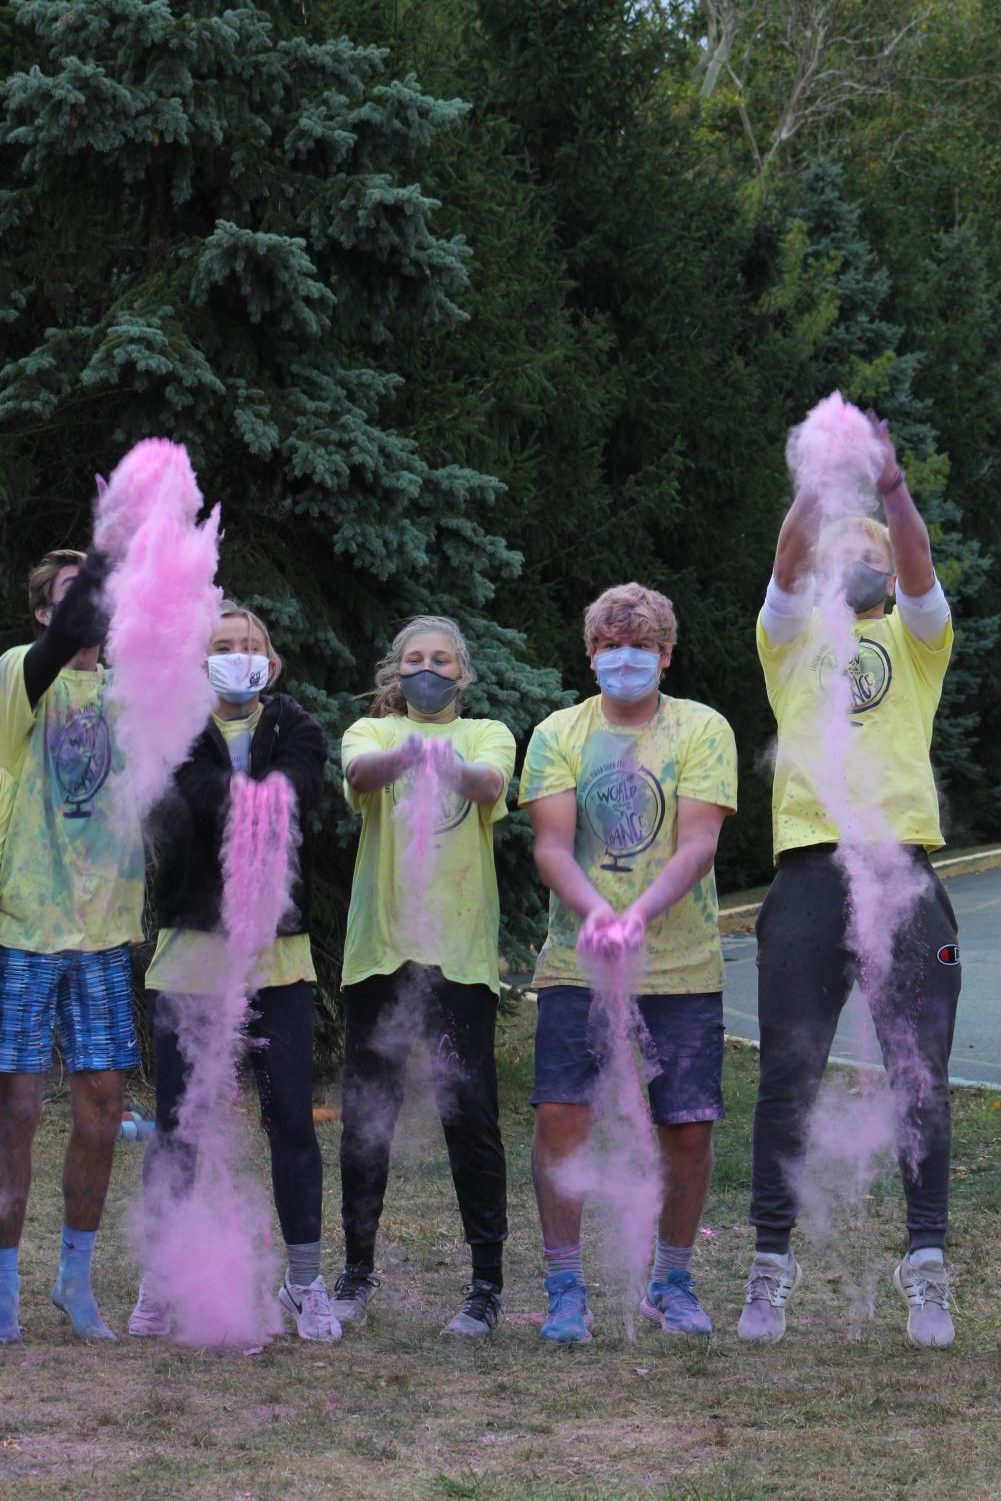 From left to right, senior Max Mylott, senior Ella Hebert, sophomore Allie Wolf, senior Jacob Young and junior Zach Osborne throw colored paint powder in celebration of the end of the FT3K Color Run Race on Oct. 3. The Cabinet organized the event in order to raise money for Riley Children's Hospital.